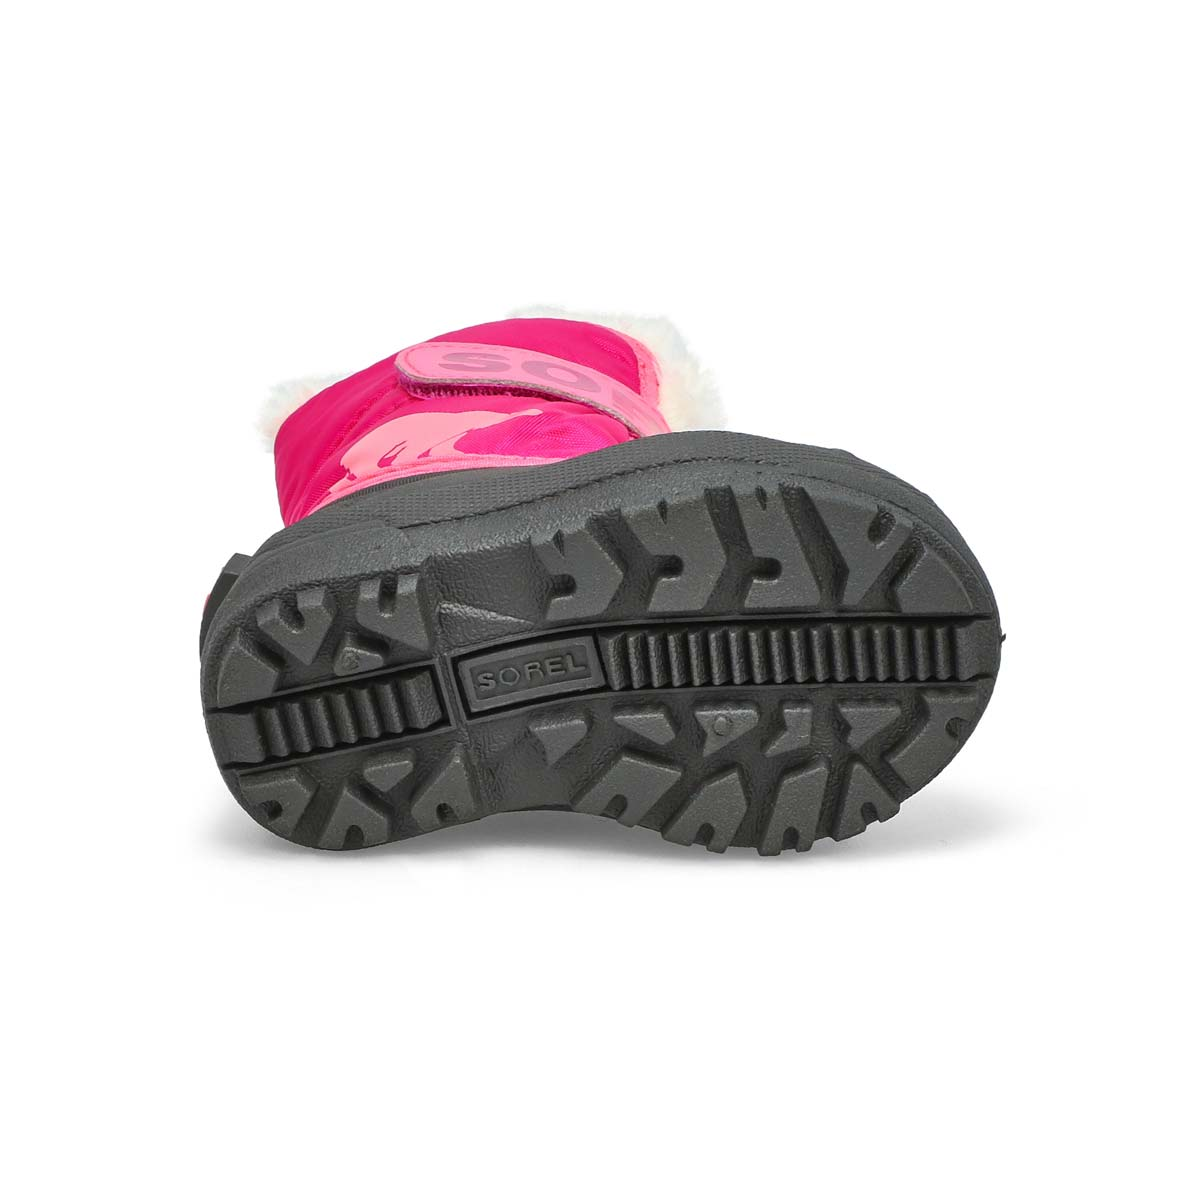 Infs-g Snow Commander pnk/blush boot